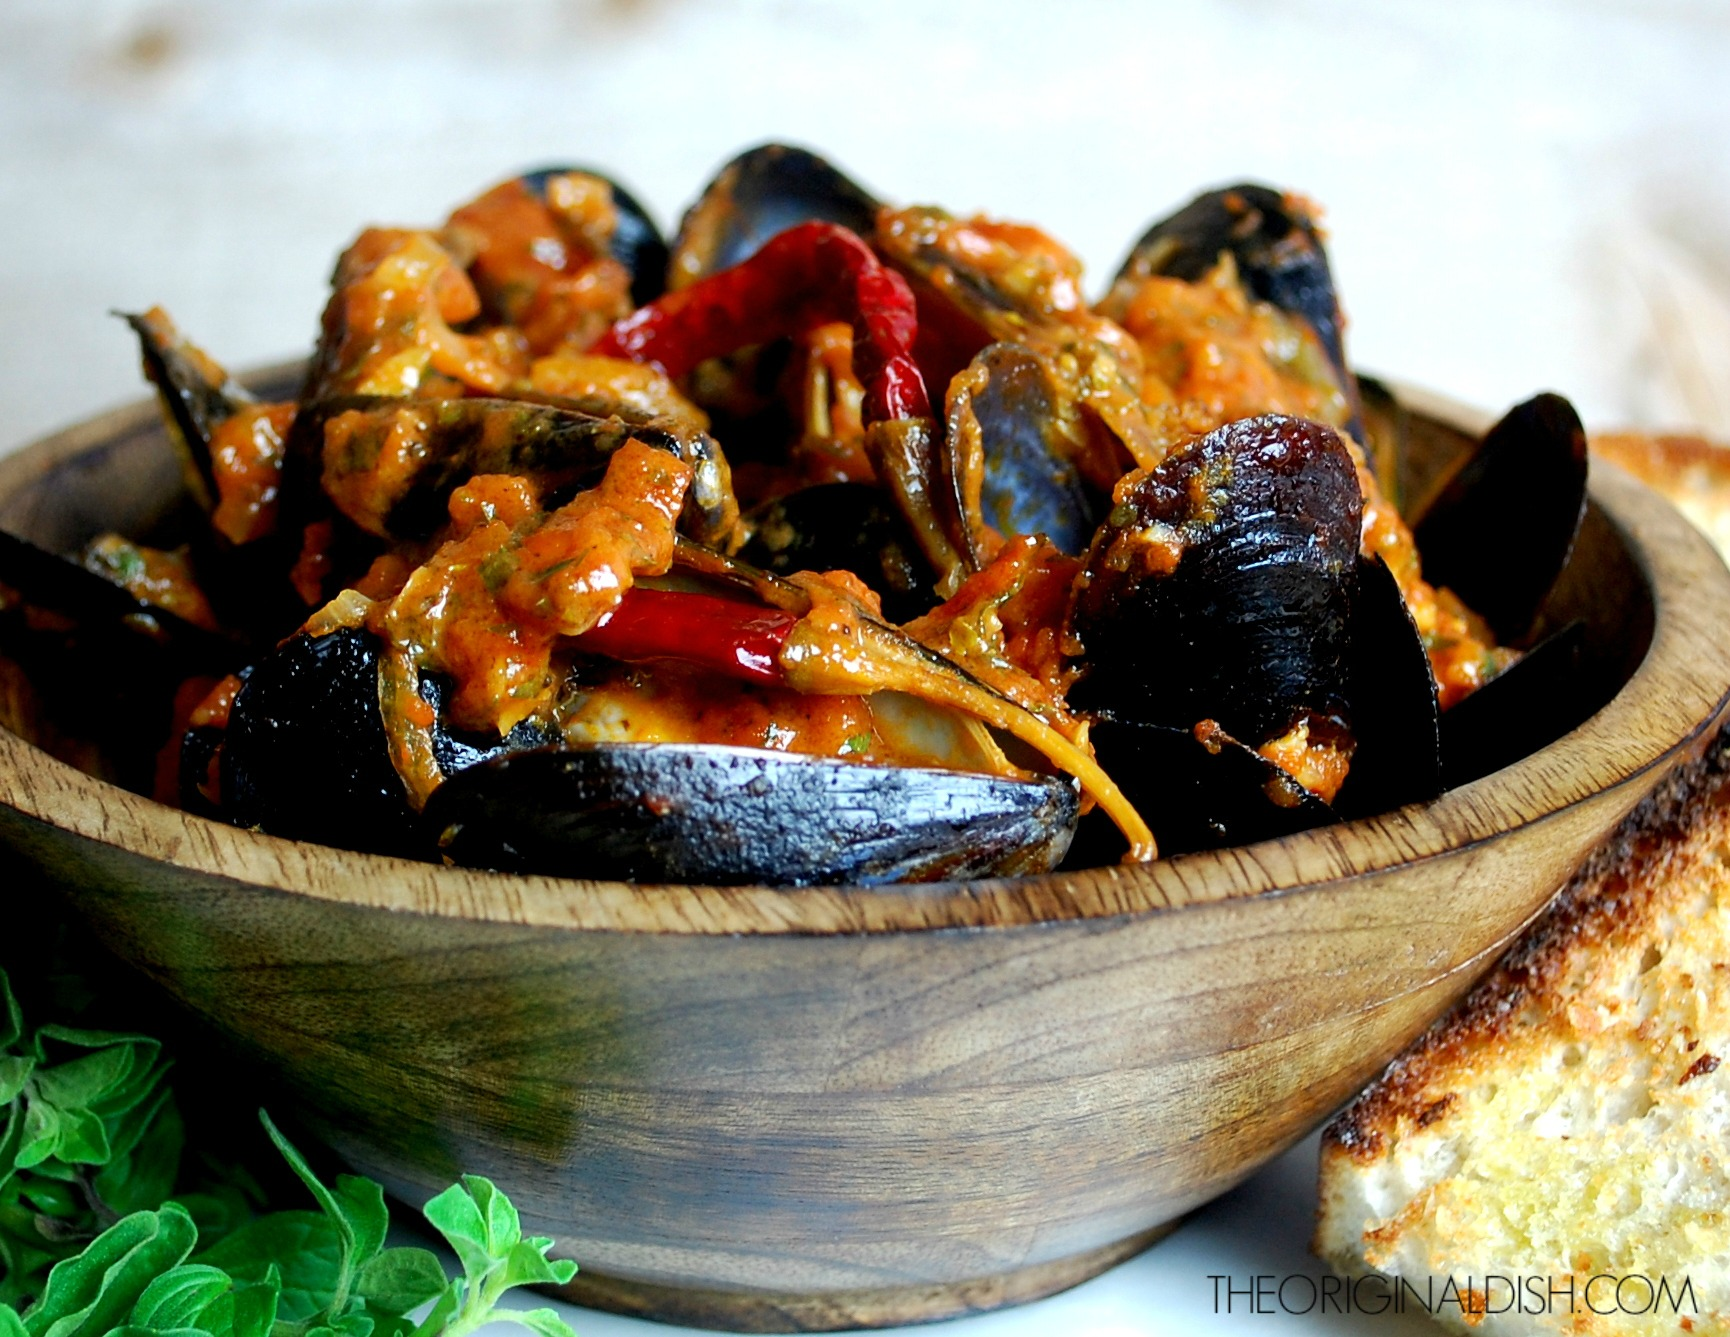 Steamed Mussels in Spicy Tomato-Wine Broth with Crusty Garlic Bread ...